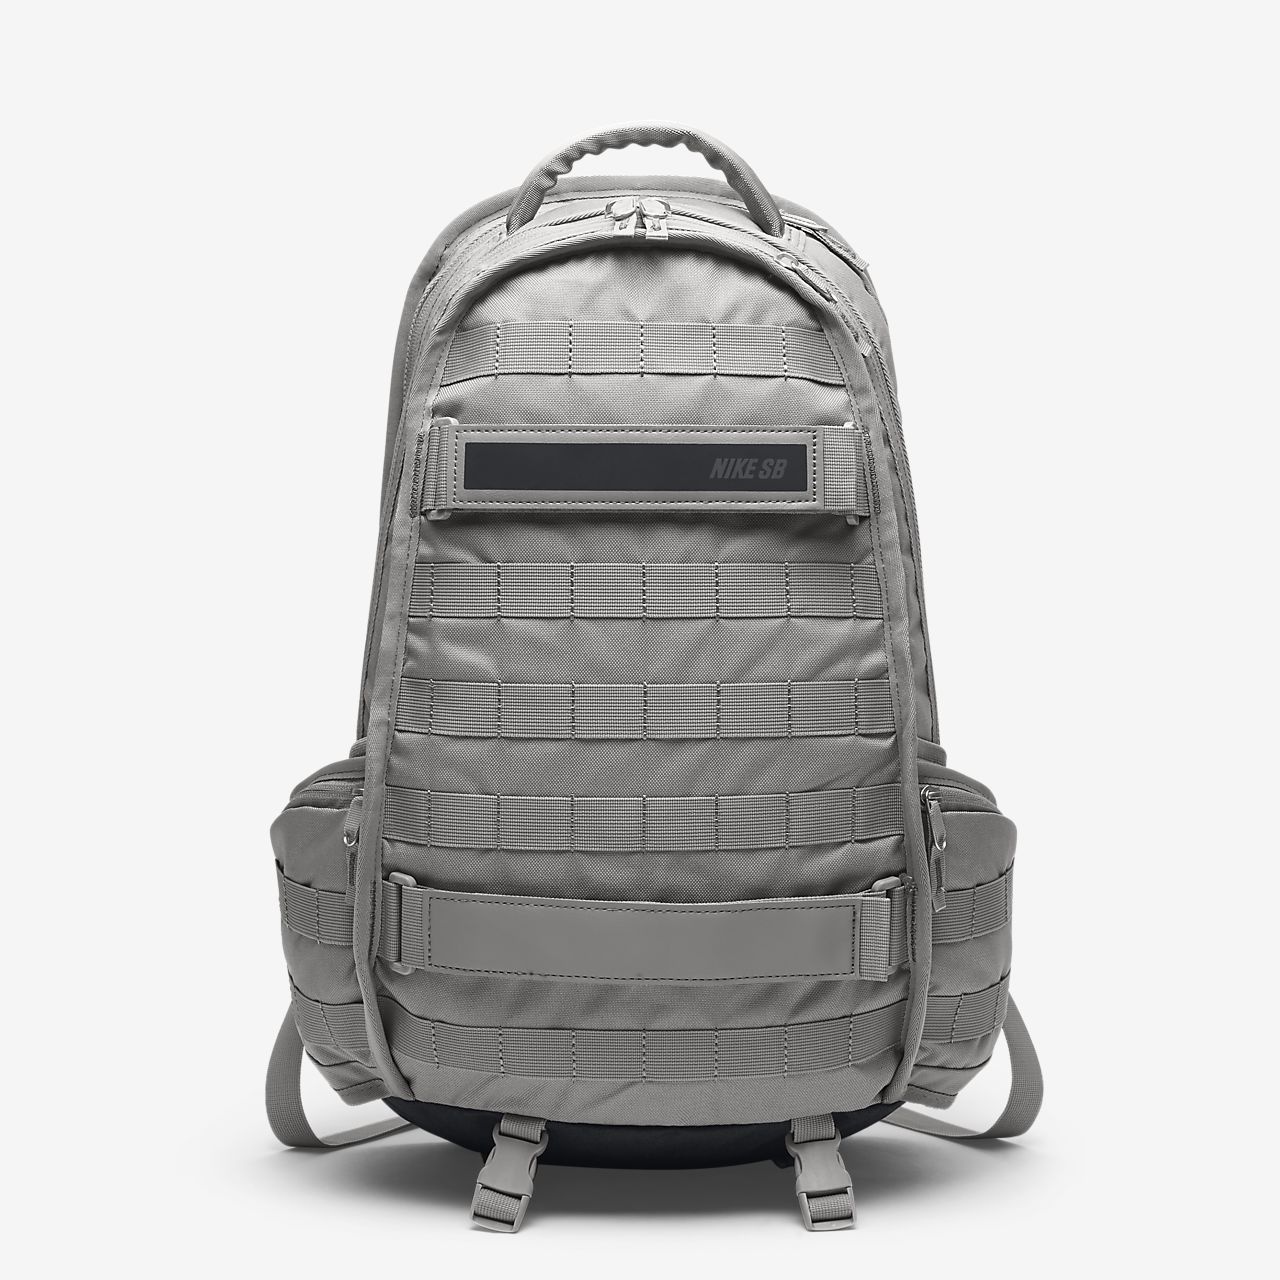 nike backpack rpm online   OFF77% Discounts 34578c65e6598